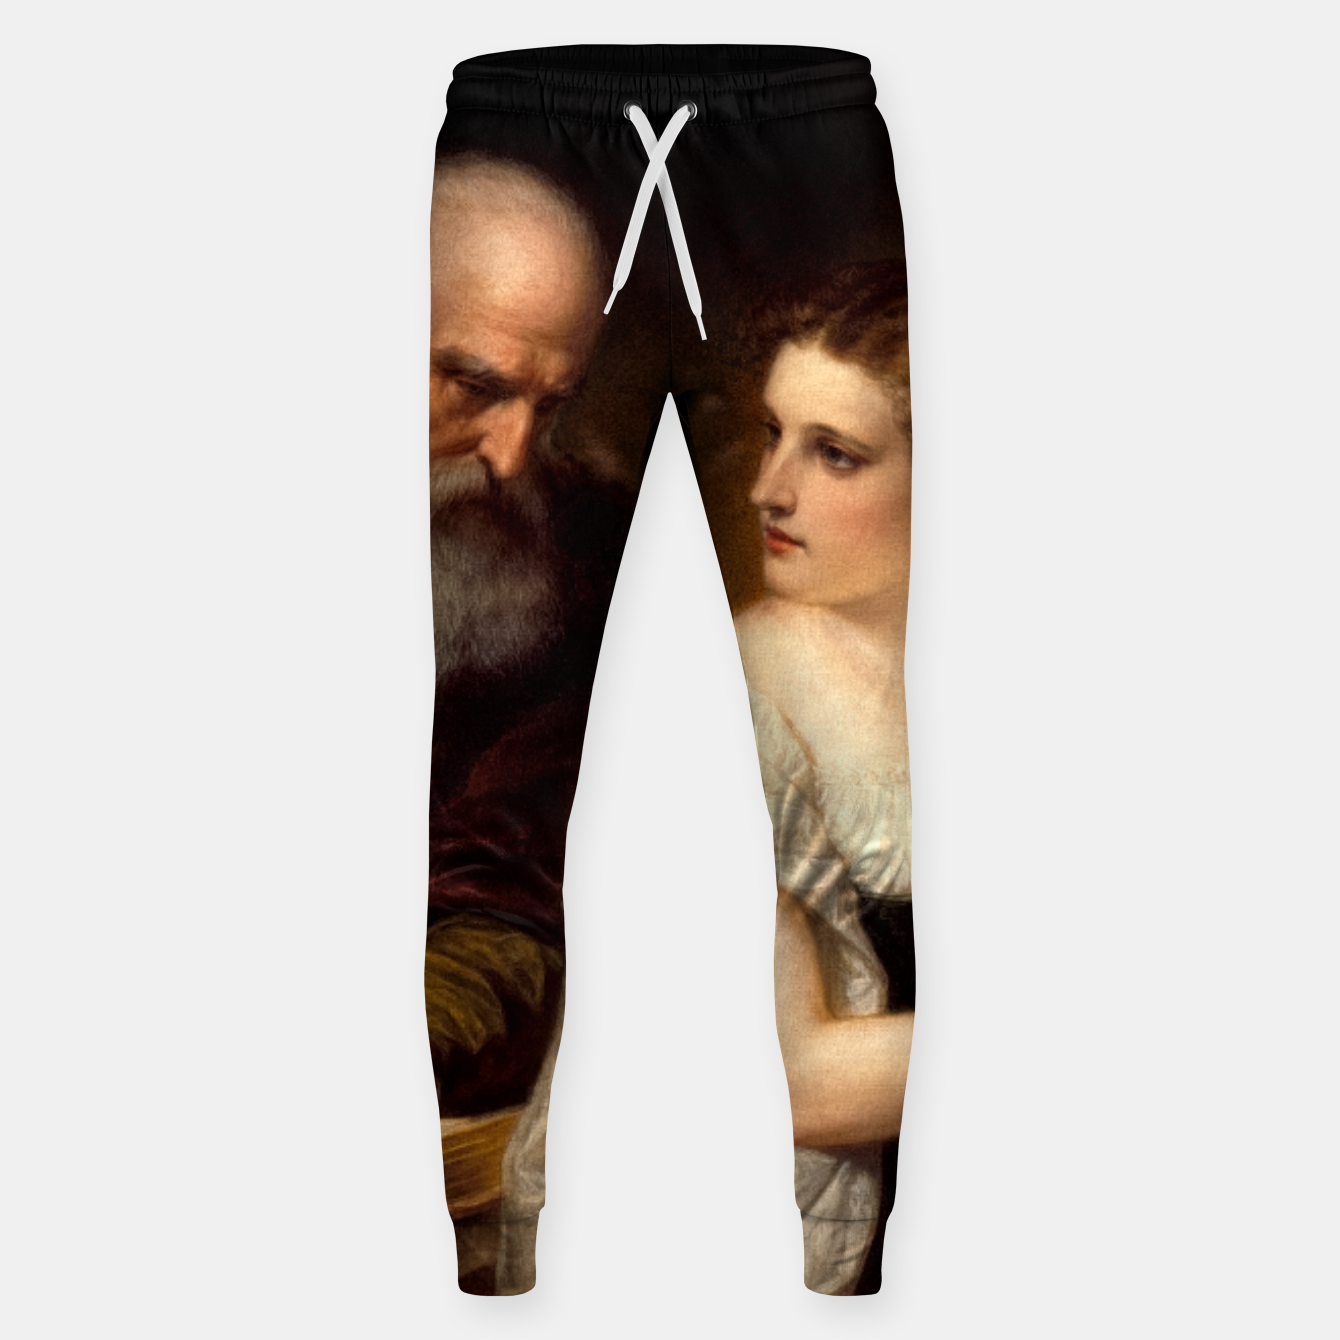 Zdjęcie Philosophy and Christian Art by Daniel Huntington Sweatpants - Live Heroes